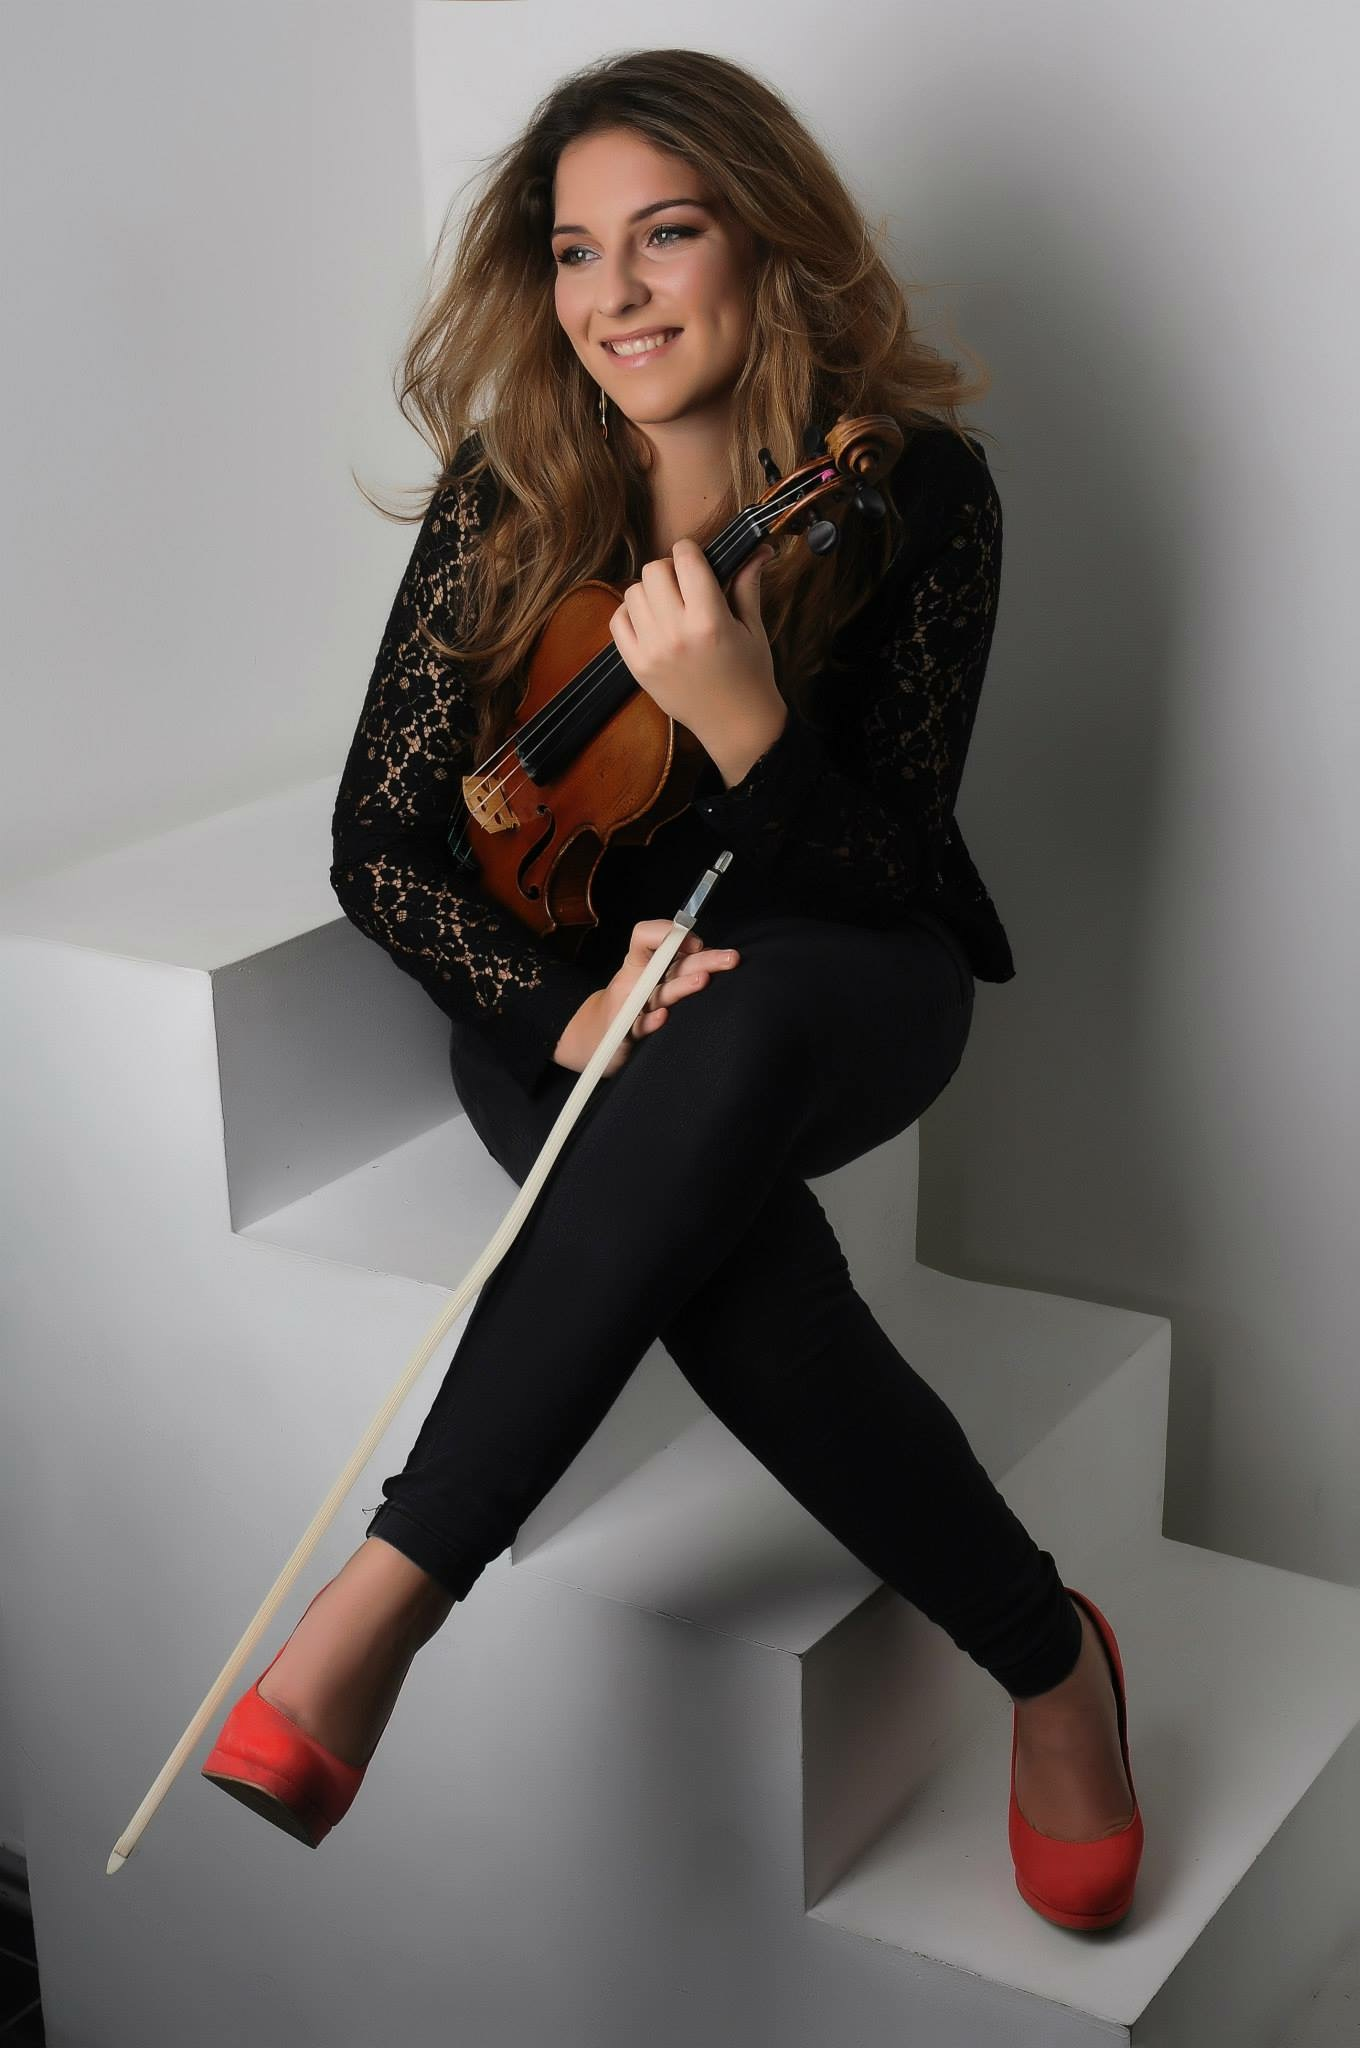 - Antonia graduated from the Royal Academy of Music with a First Class honours degree in 2015. Since then, she has been recipient of the Countess of Munster Award and a Chamber Music Fellow at the Academy. Antonia has won many prizes as a chamber musician with Trio Derazey, including the St Martin-in-the Field's chamber music competition, the Malta International Music Competition and she has won First Prize in the Verao Classico Festival in Portugal as a soloist. Antonia enjoys teaching her violin class at Brunel University and works as a freelance violinist playing for commercial recording sessions and for orchestras such as the London Concert Orchestra, Mozart Festival Orchestra and Aurora Orchestra. She is currently on trial for a principal position with the London Mozart Players. Antonia plays on a Francois Fent violin from Paris, circa 1780.